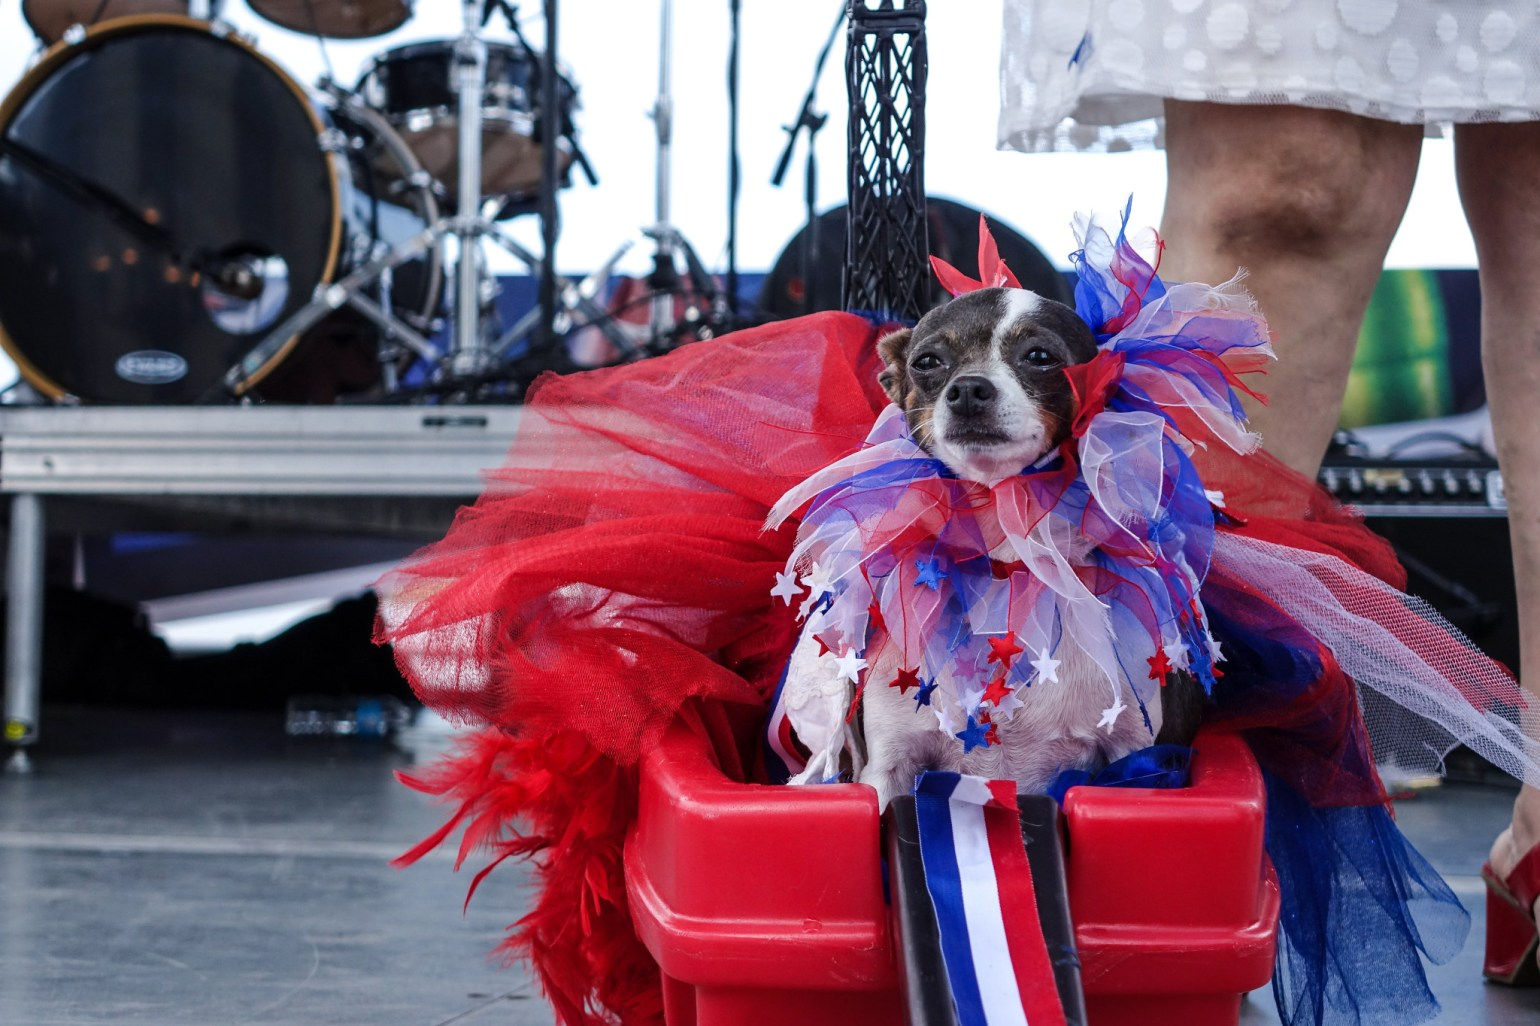 A puppy dresses in its best French attire for Bastille Day Fete. (Photo: Paul Broussard)